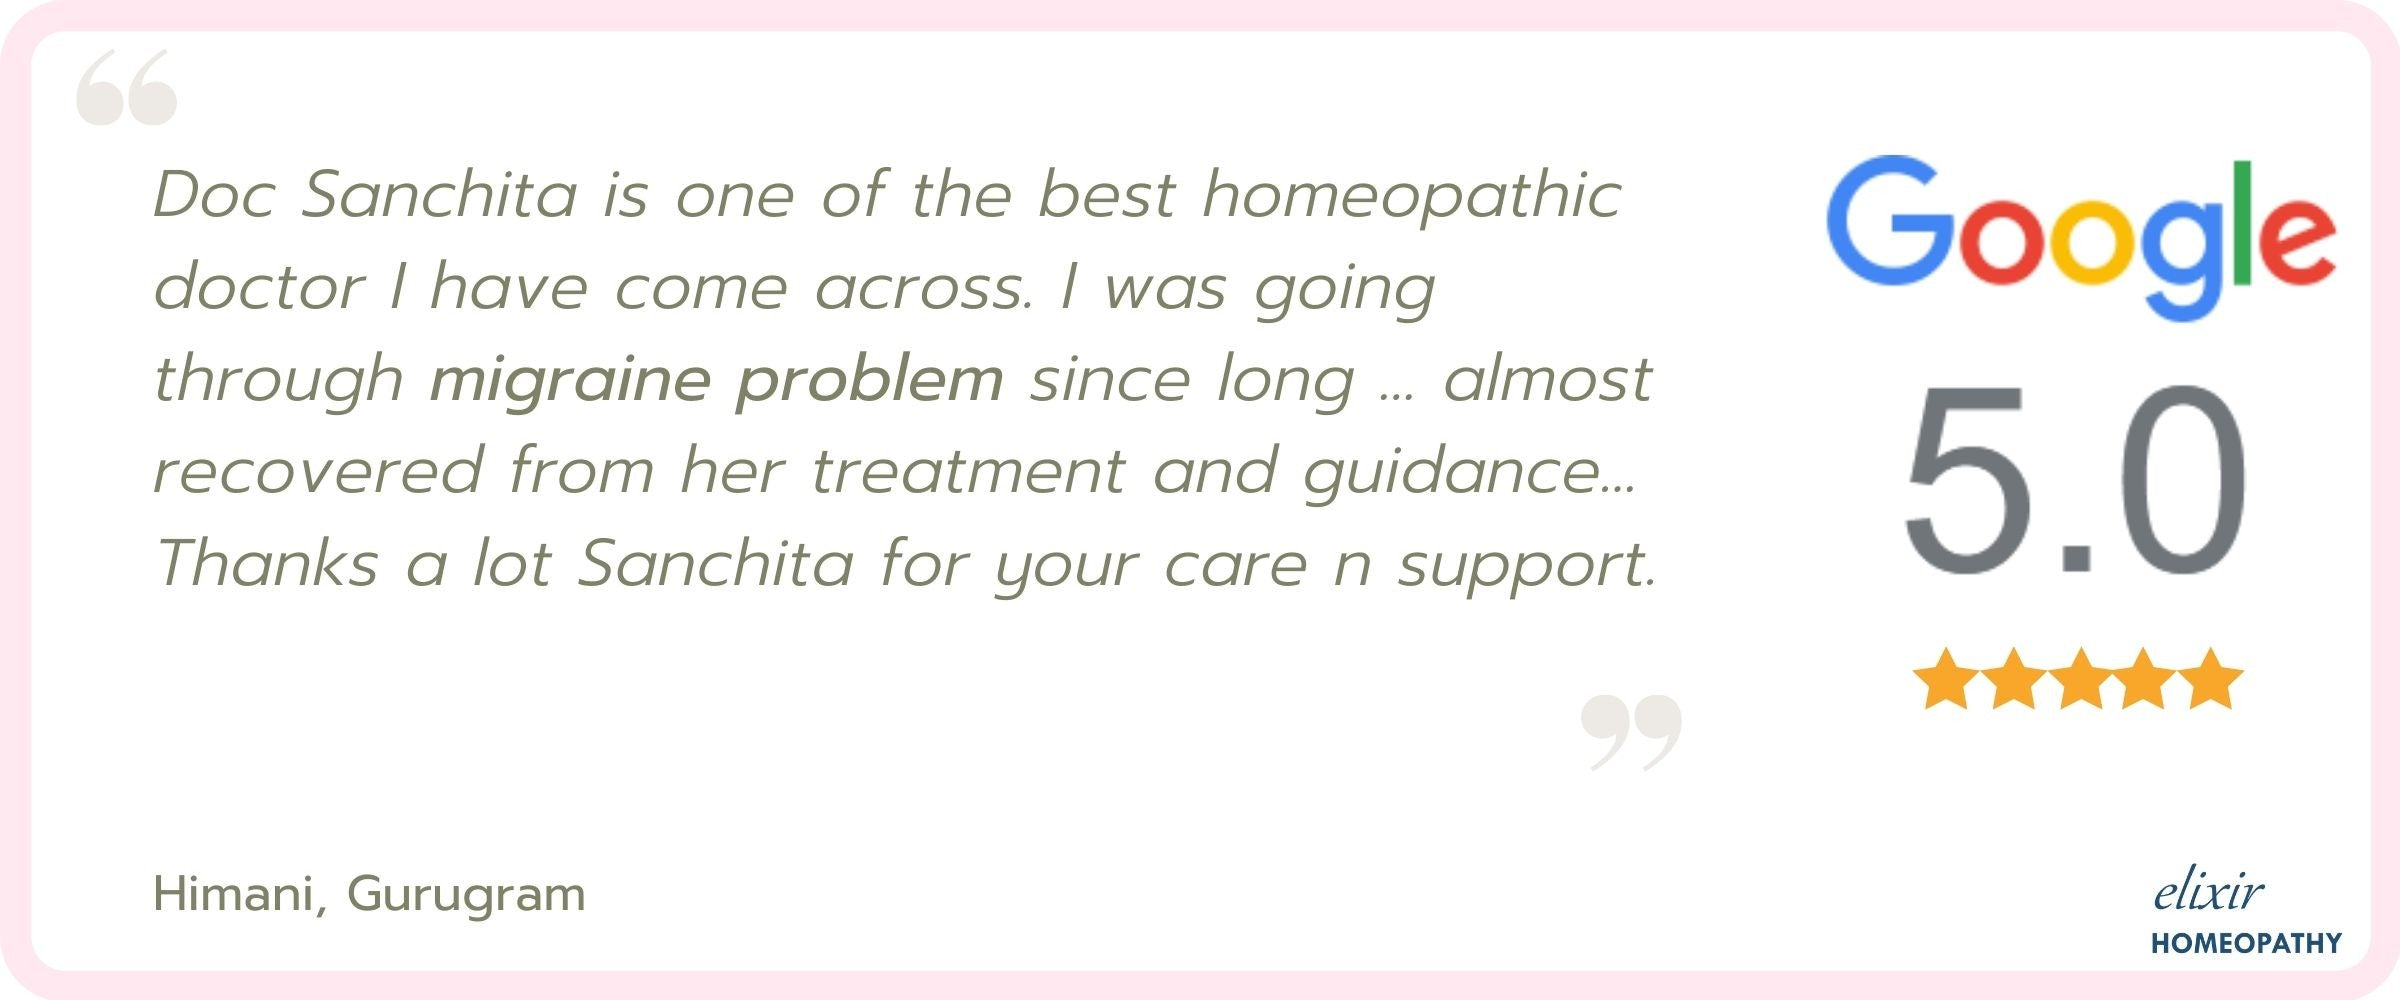 5-star rating and review by patient for homeopathic treatment of migraine.